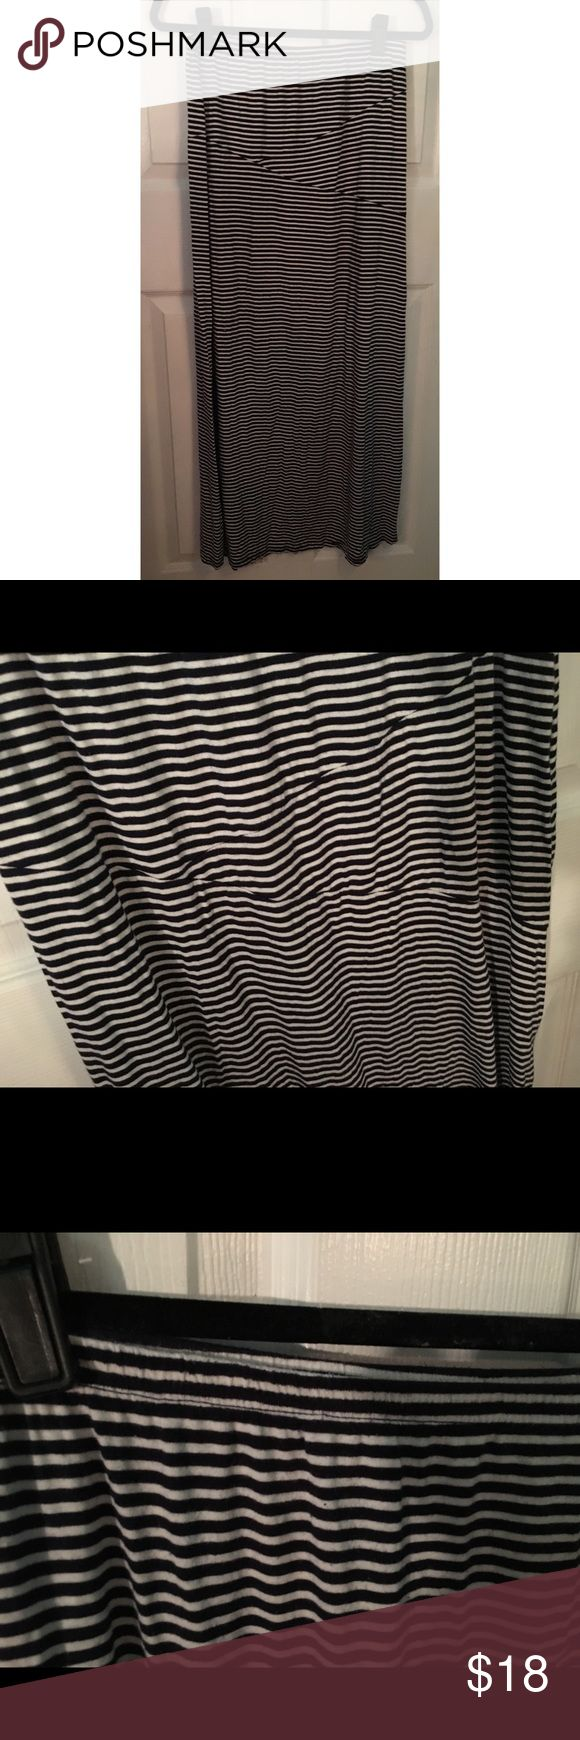 """Cotton On Navy and White Striped Maxi Skirt Super cute navy and white striped maxi skirt from Cotton On. It is stretchy. Great for a petite/average sized person- I am 5'4"""" and it was not too long on me. Excellent used condition. Cotton On Skirts Maxi"""